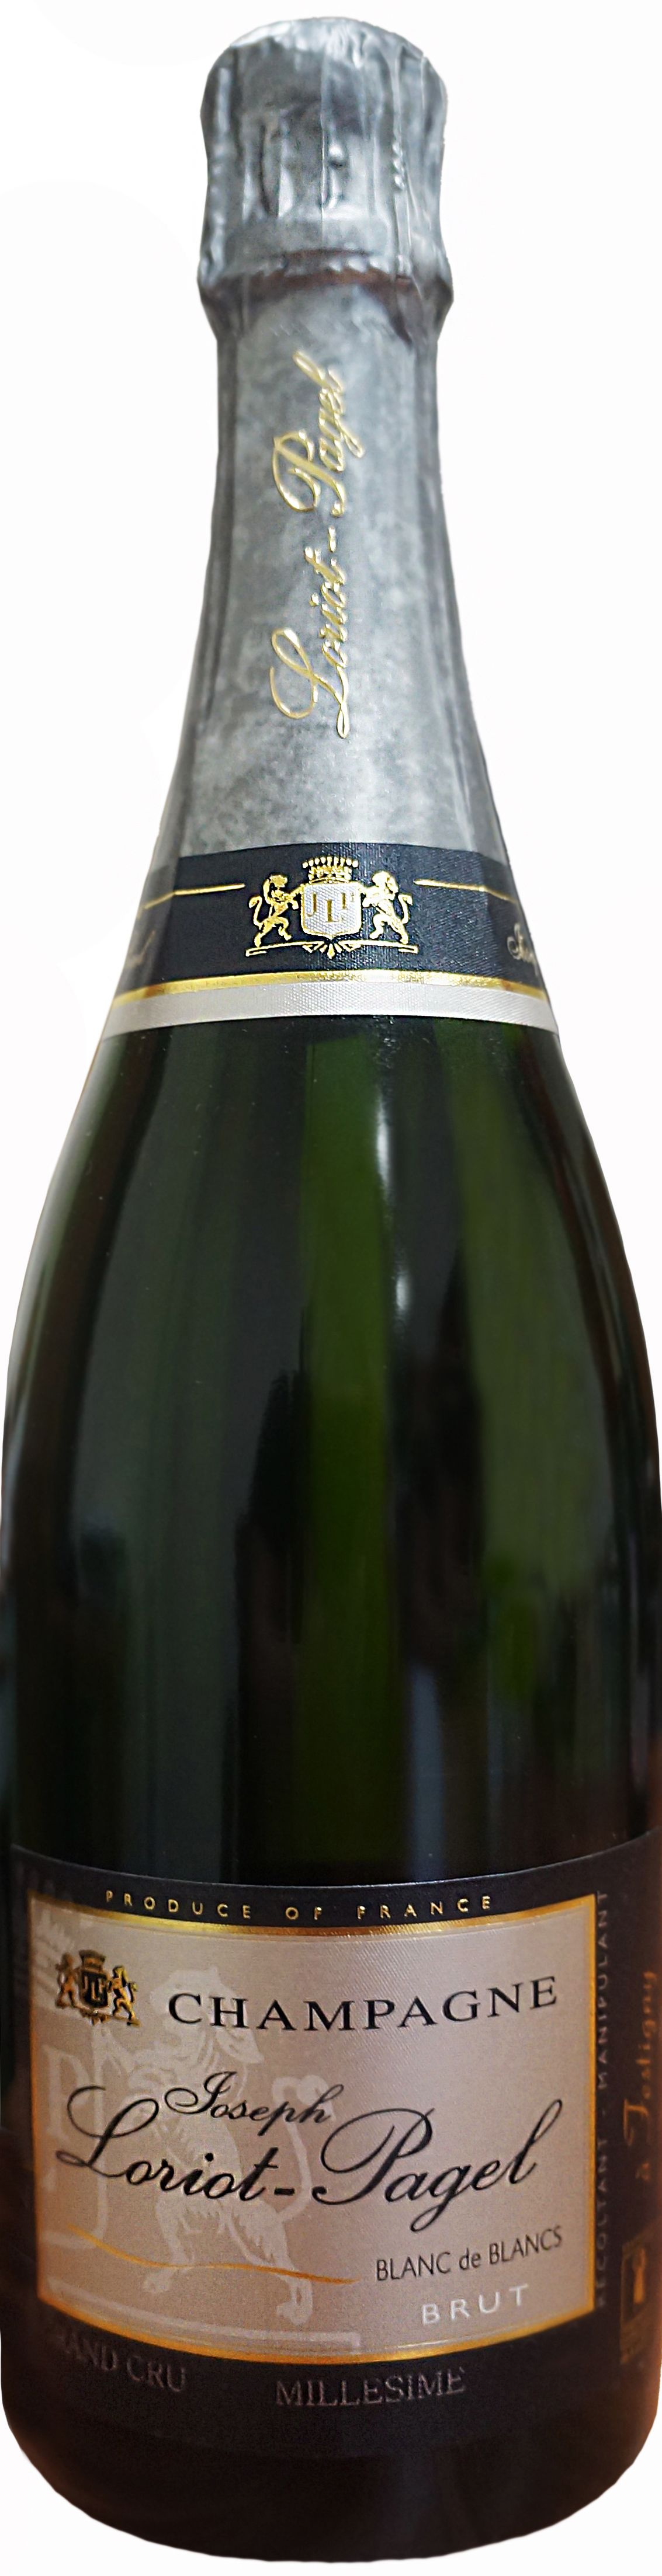 Loriot-Pagel, Blanc De Blancs Brut Grand Cru, 2010